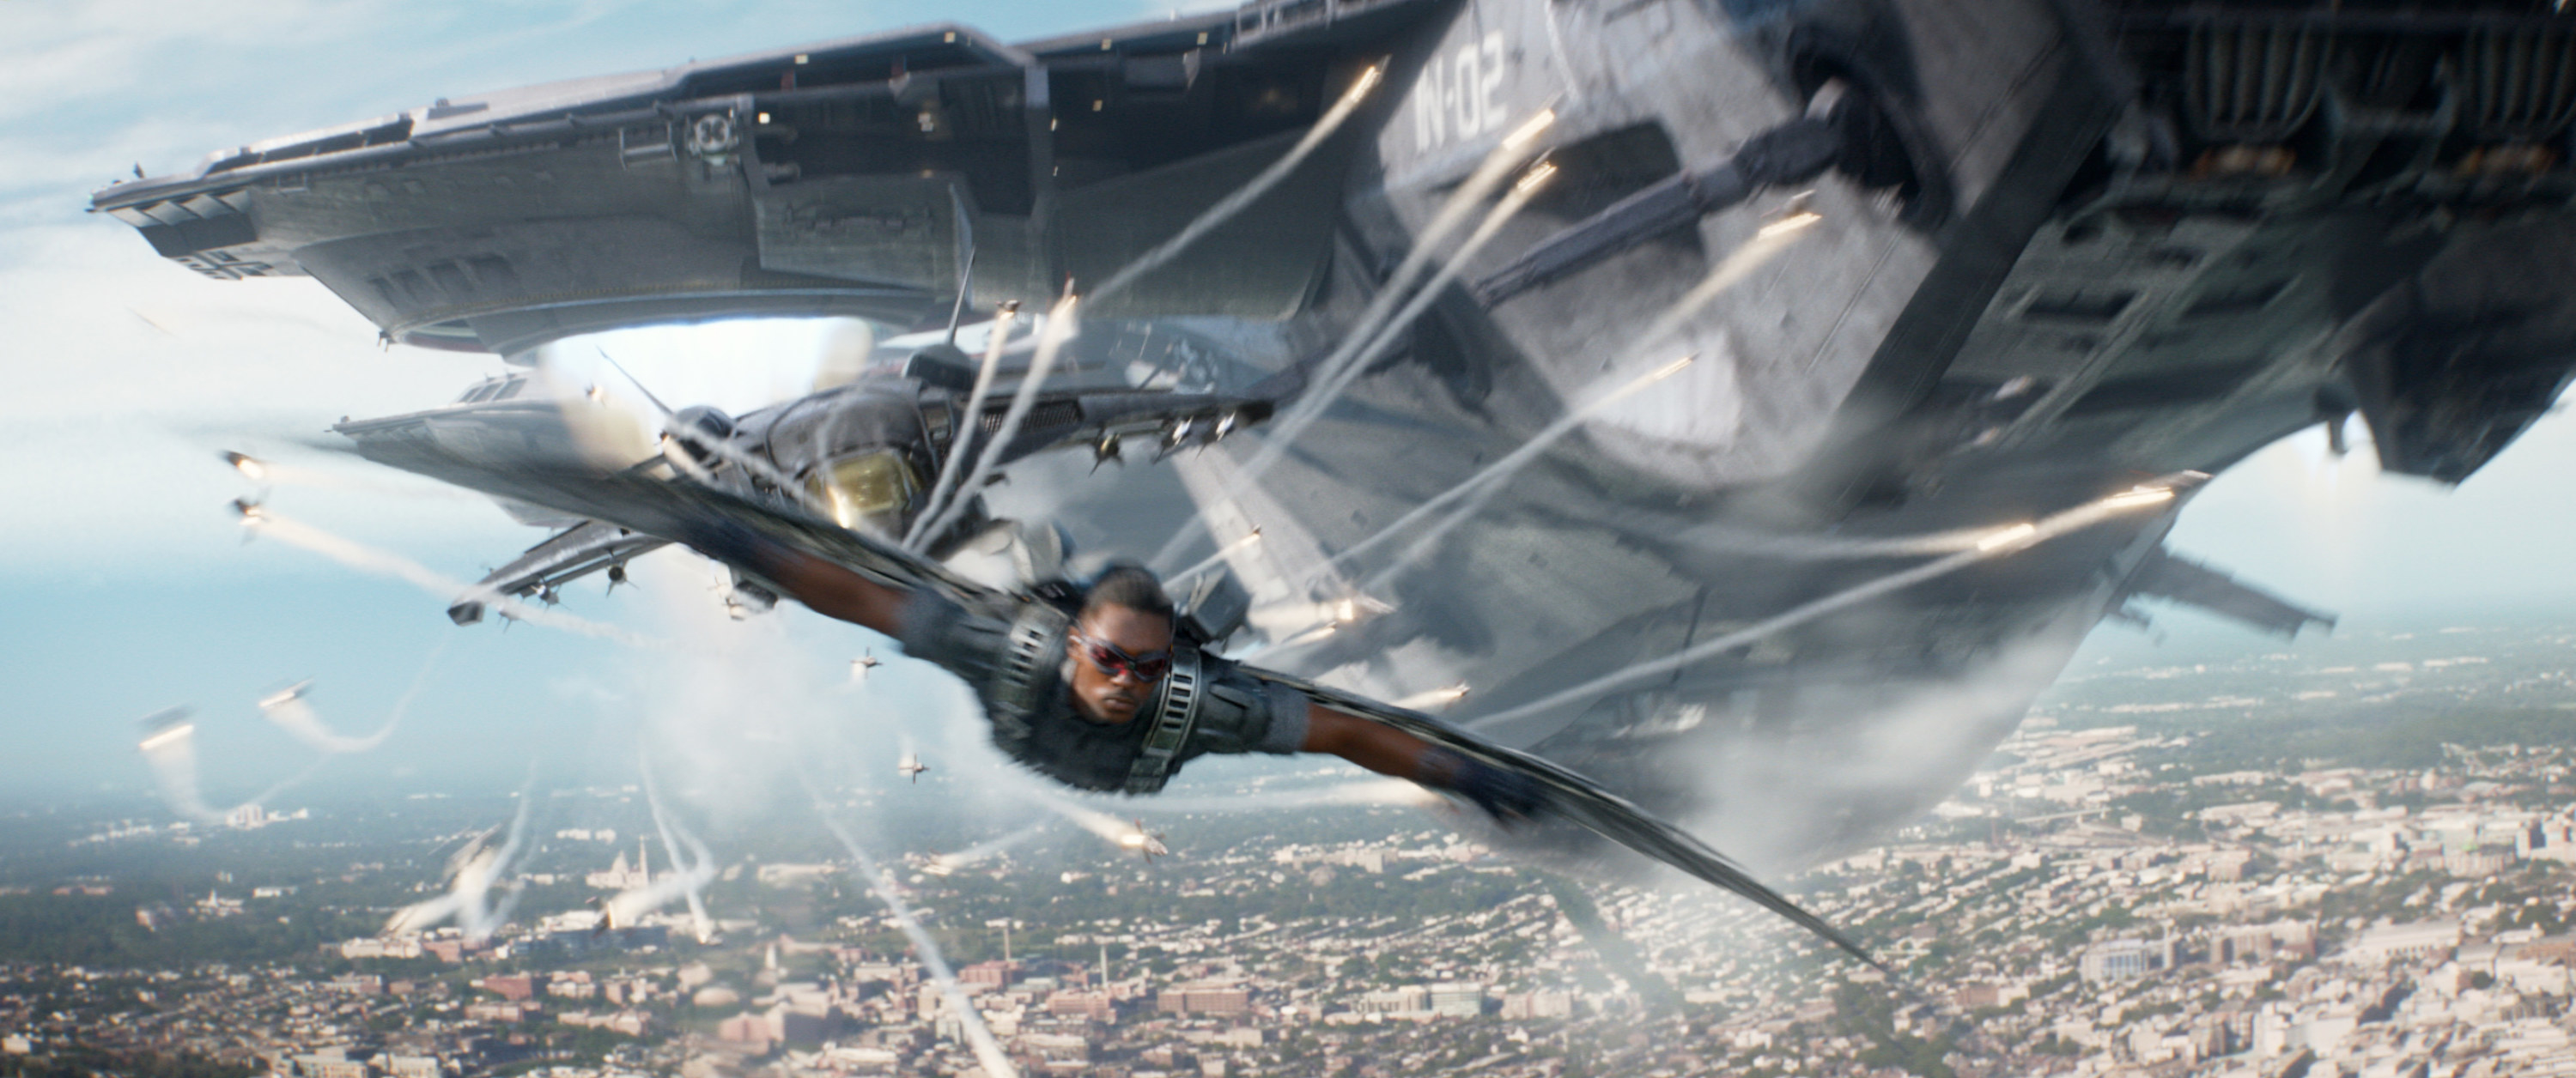 Mackie flies through the air underneath a plane as The Falcon in Captain America: The Winter Soldier